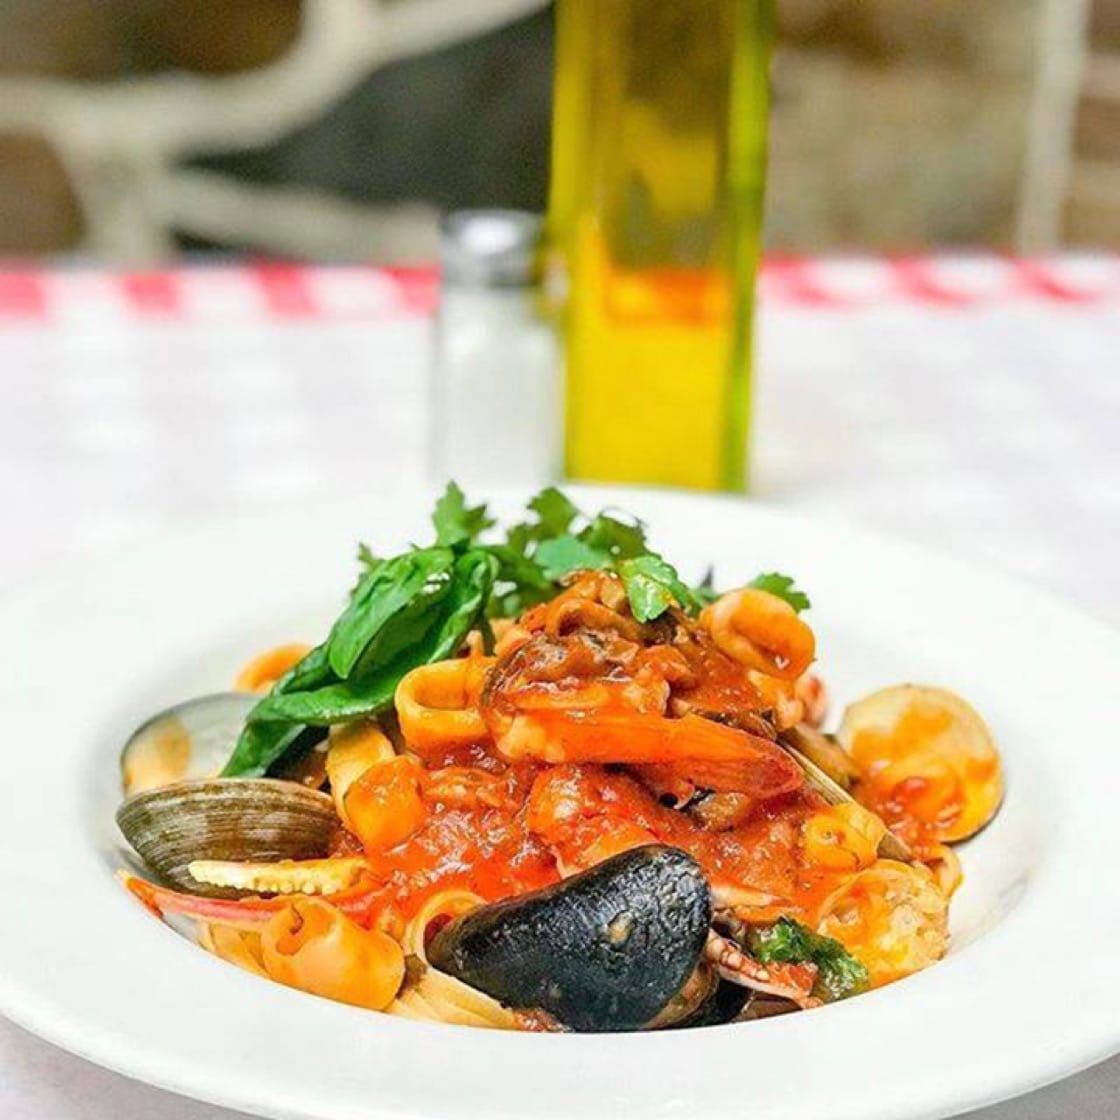 Linguine pescatore at F&J Pine Restaurant. (Photo courtesy of F&J Pine Restaurant's Facebook page.)